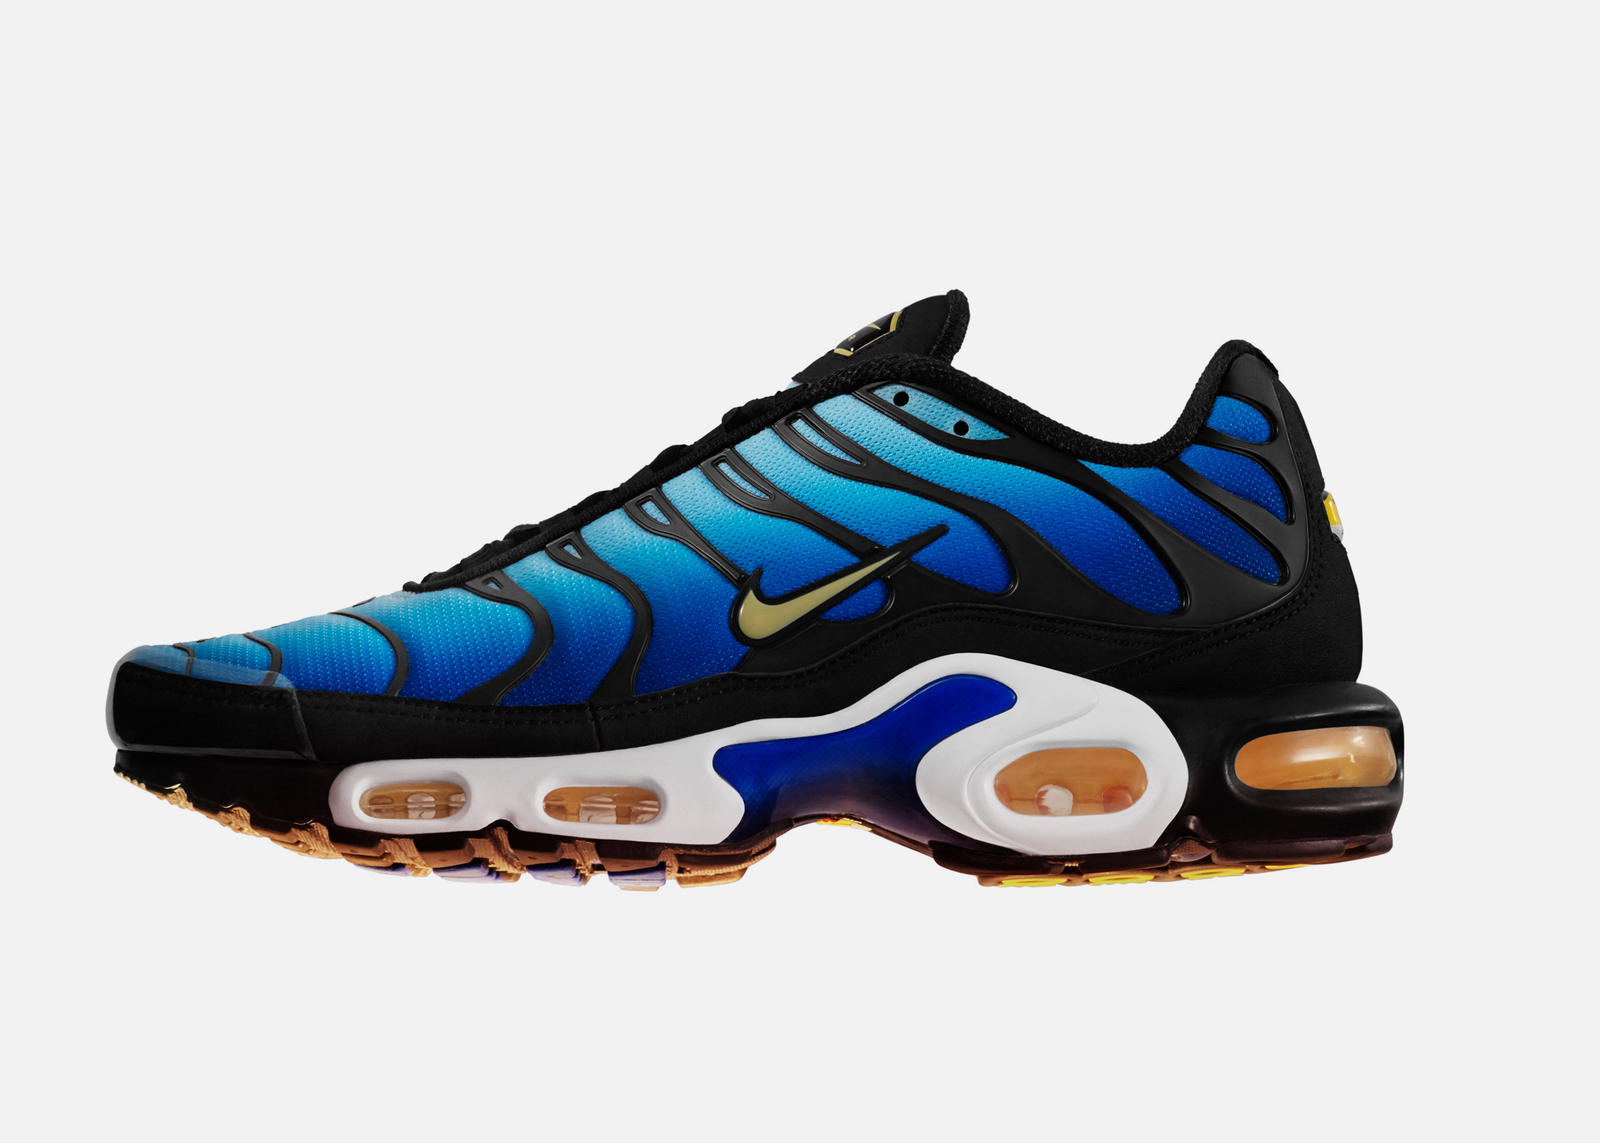 online retailer 91404 e4bf8 The Untold Story of the Nike Air Max Plus 20